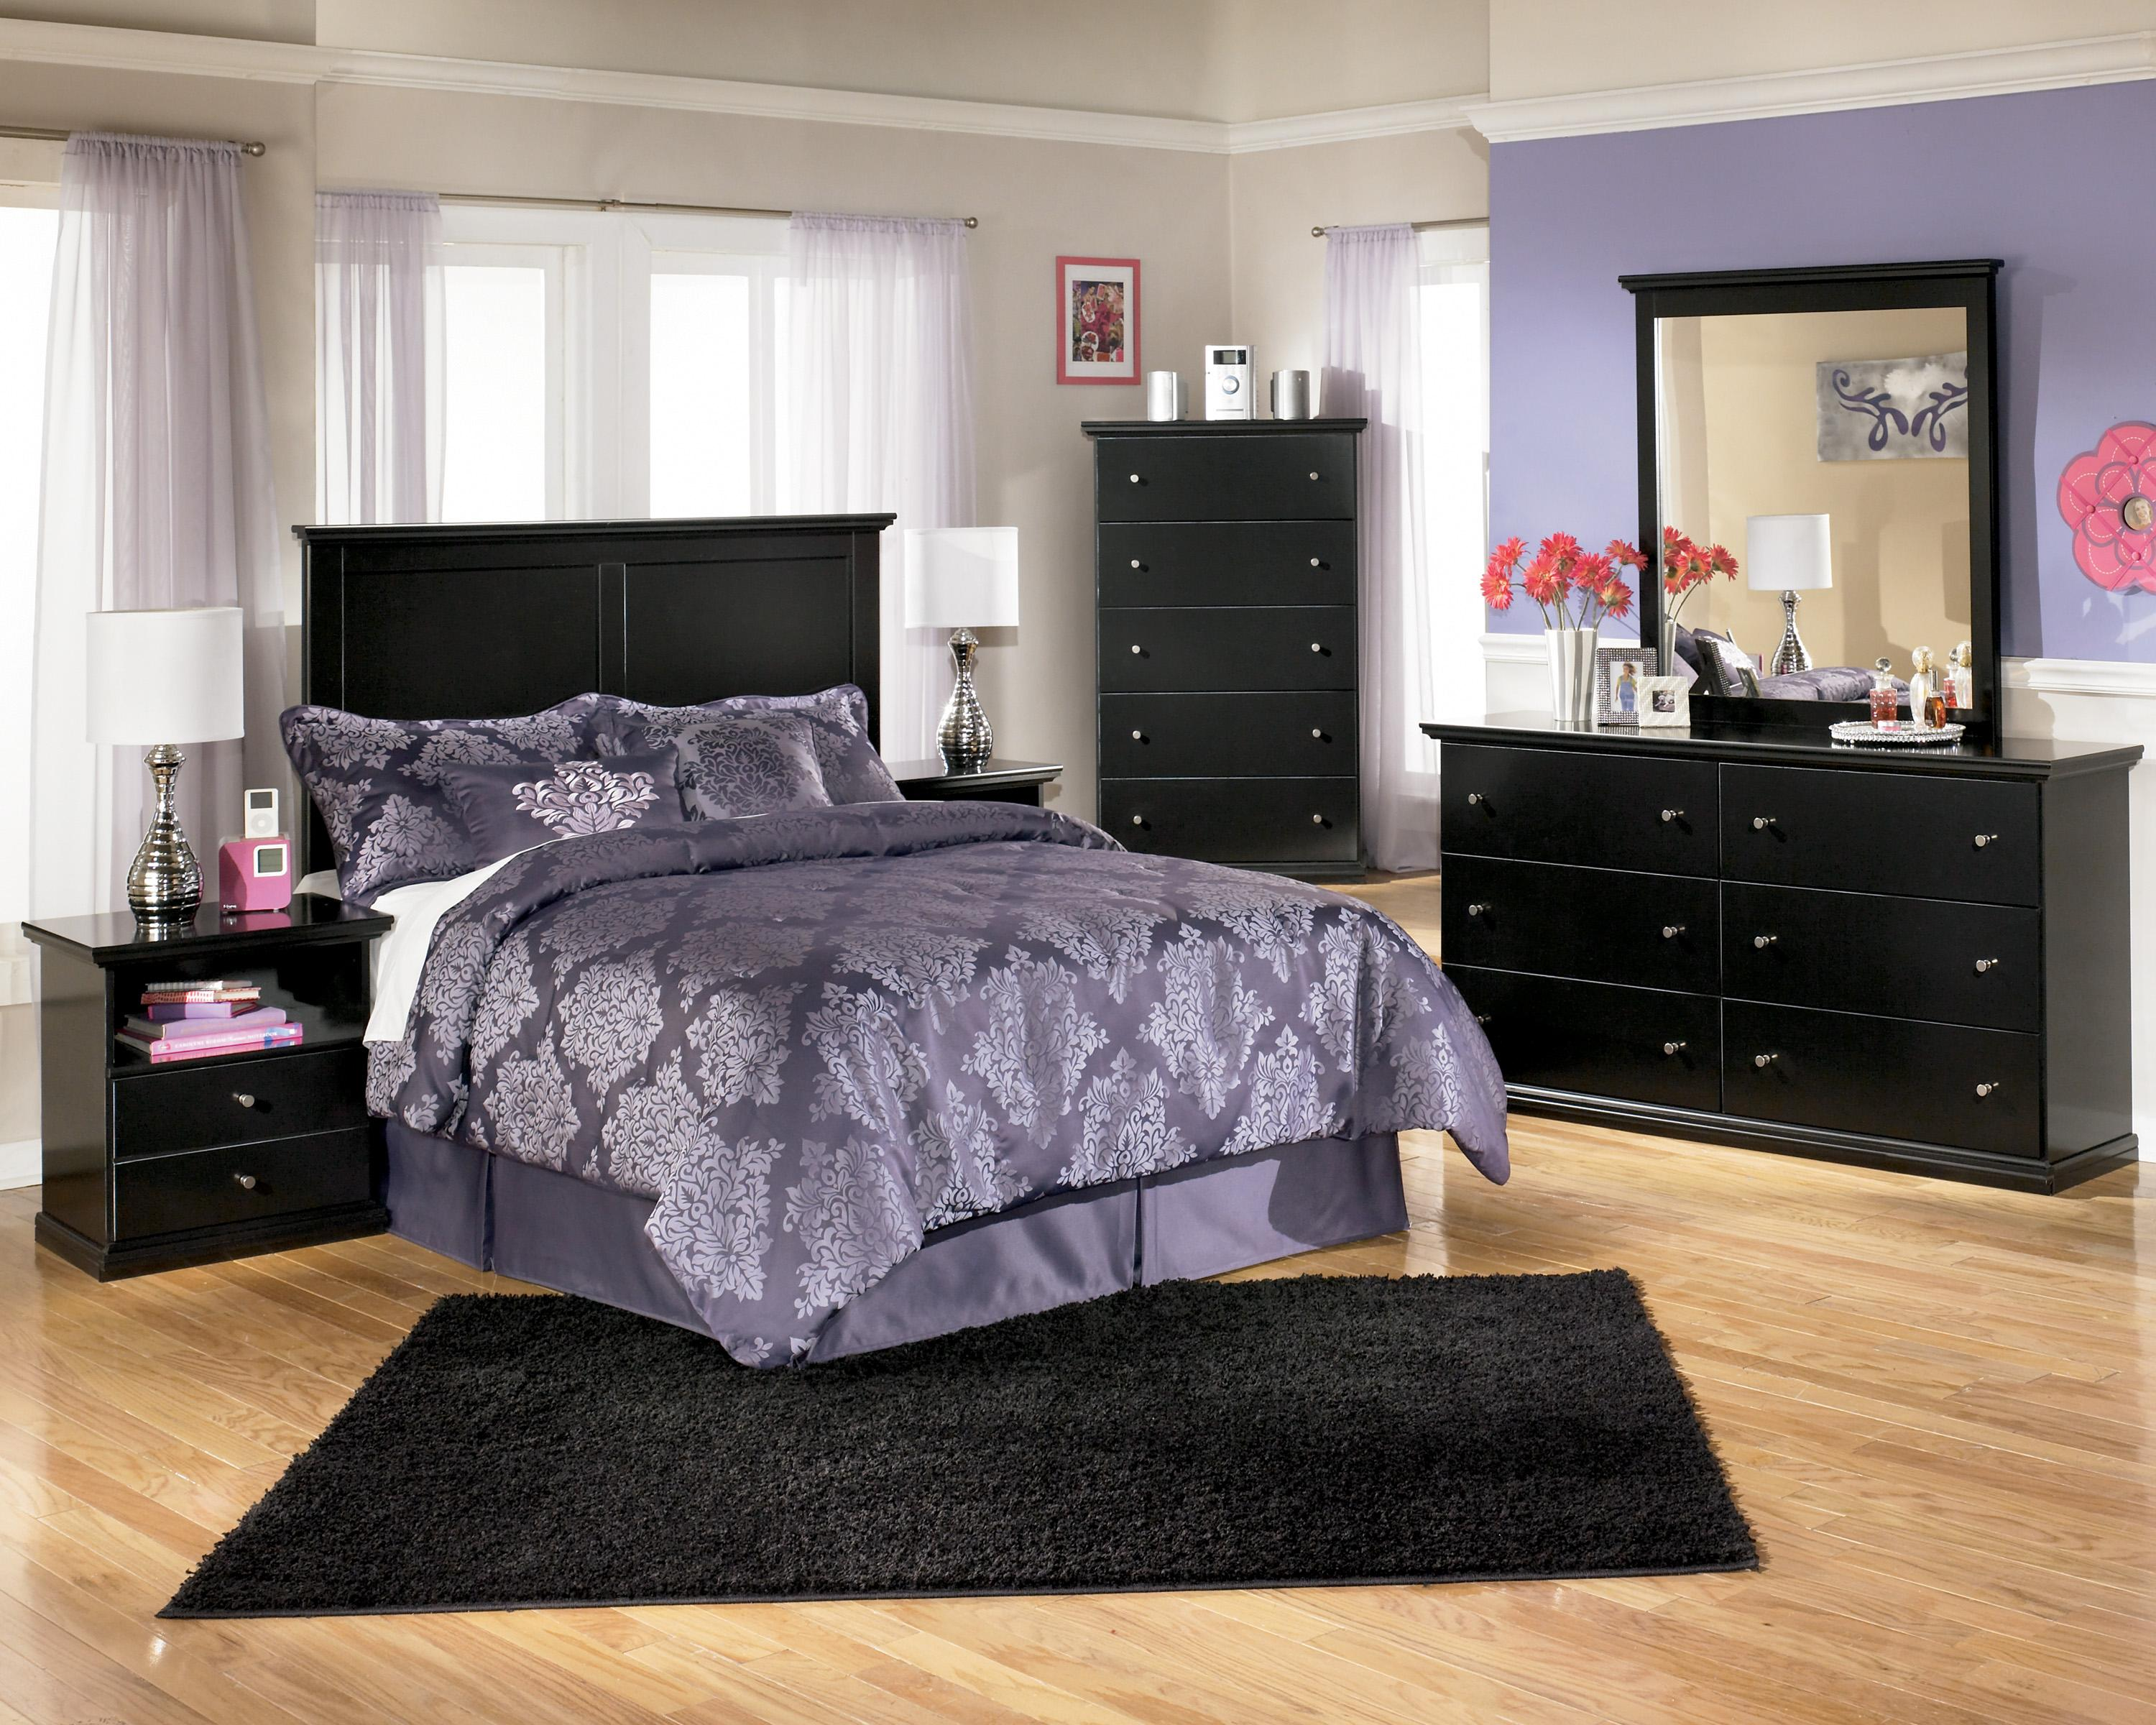 Signature Design by Ashley Maribel King Bedroom Group - Item Number: B138 K Bedroom Group 4